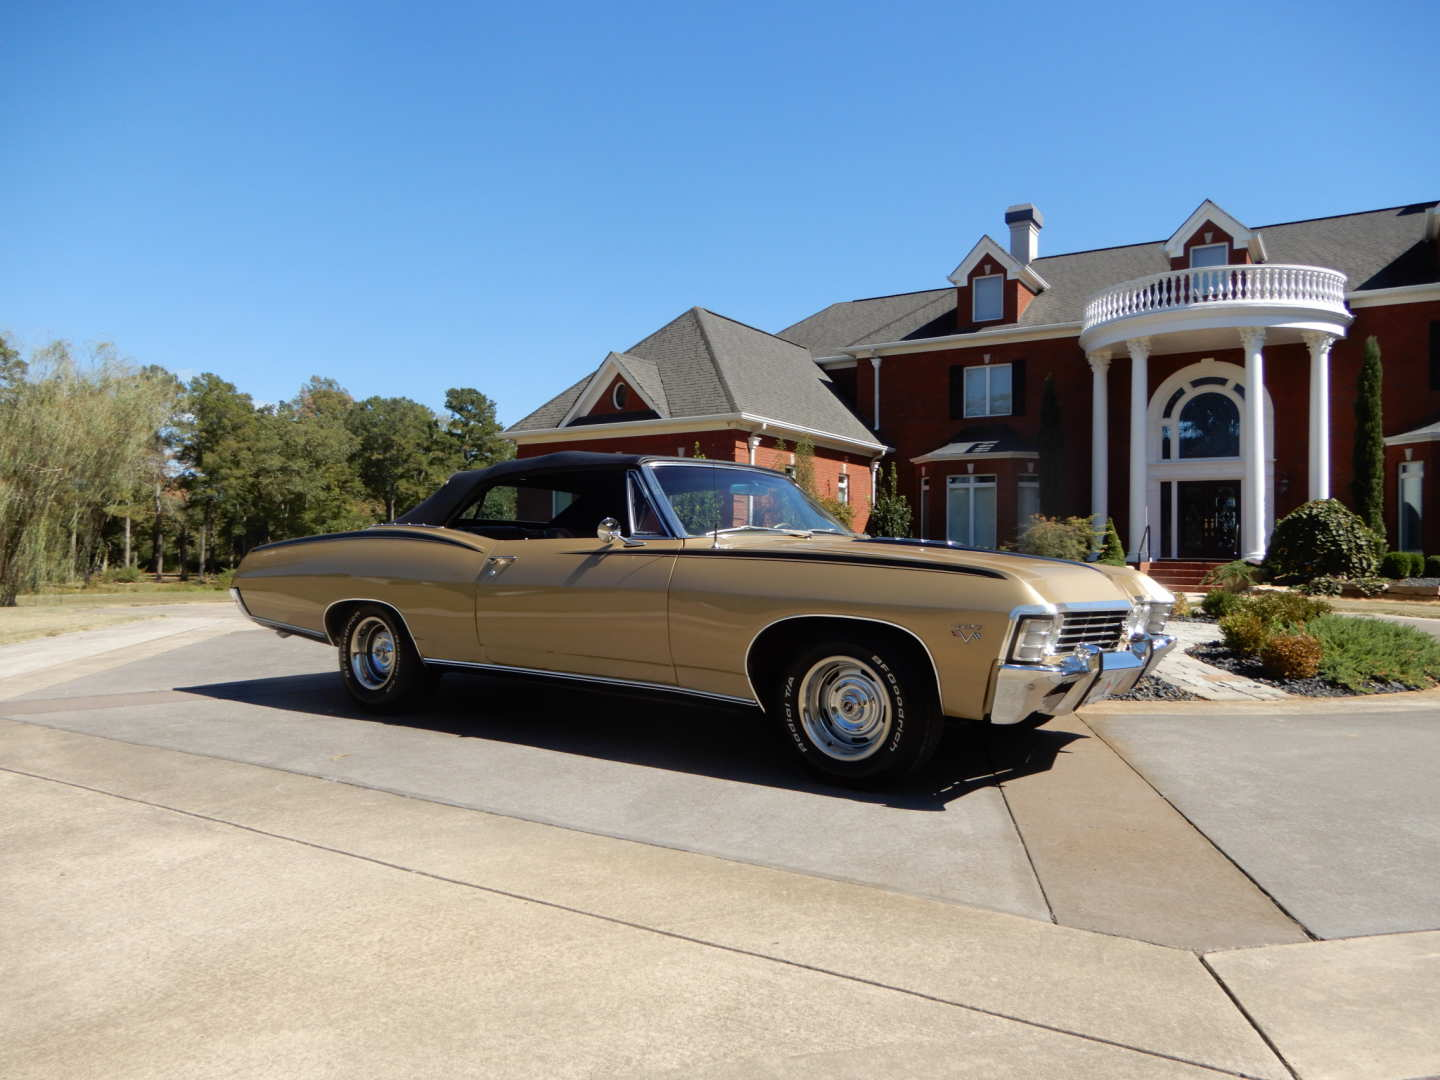 4th Image of a 1967 CHEVROLET IMPALA